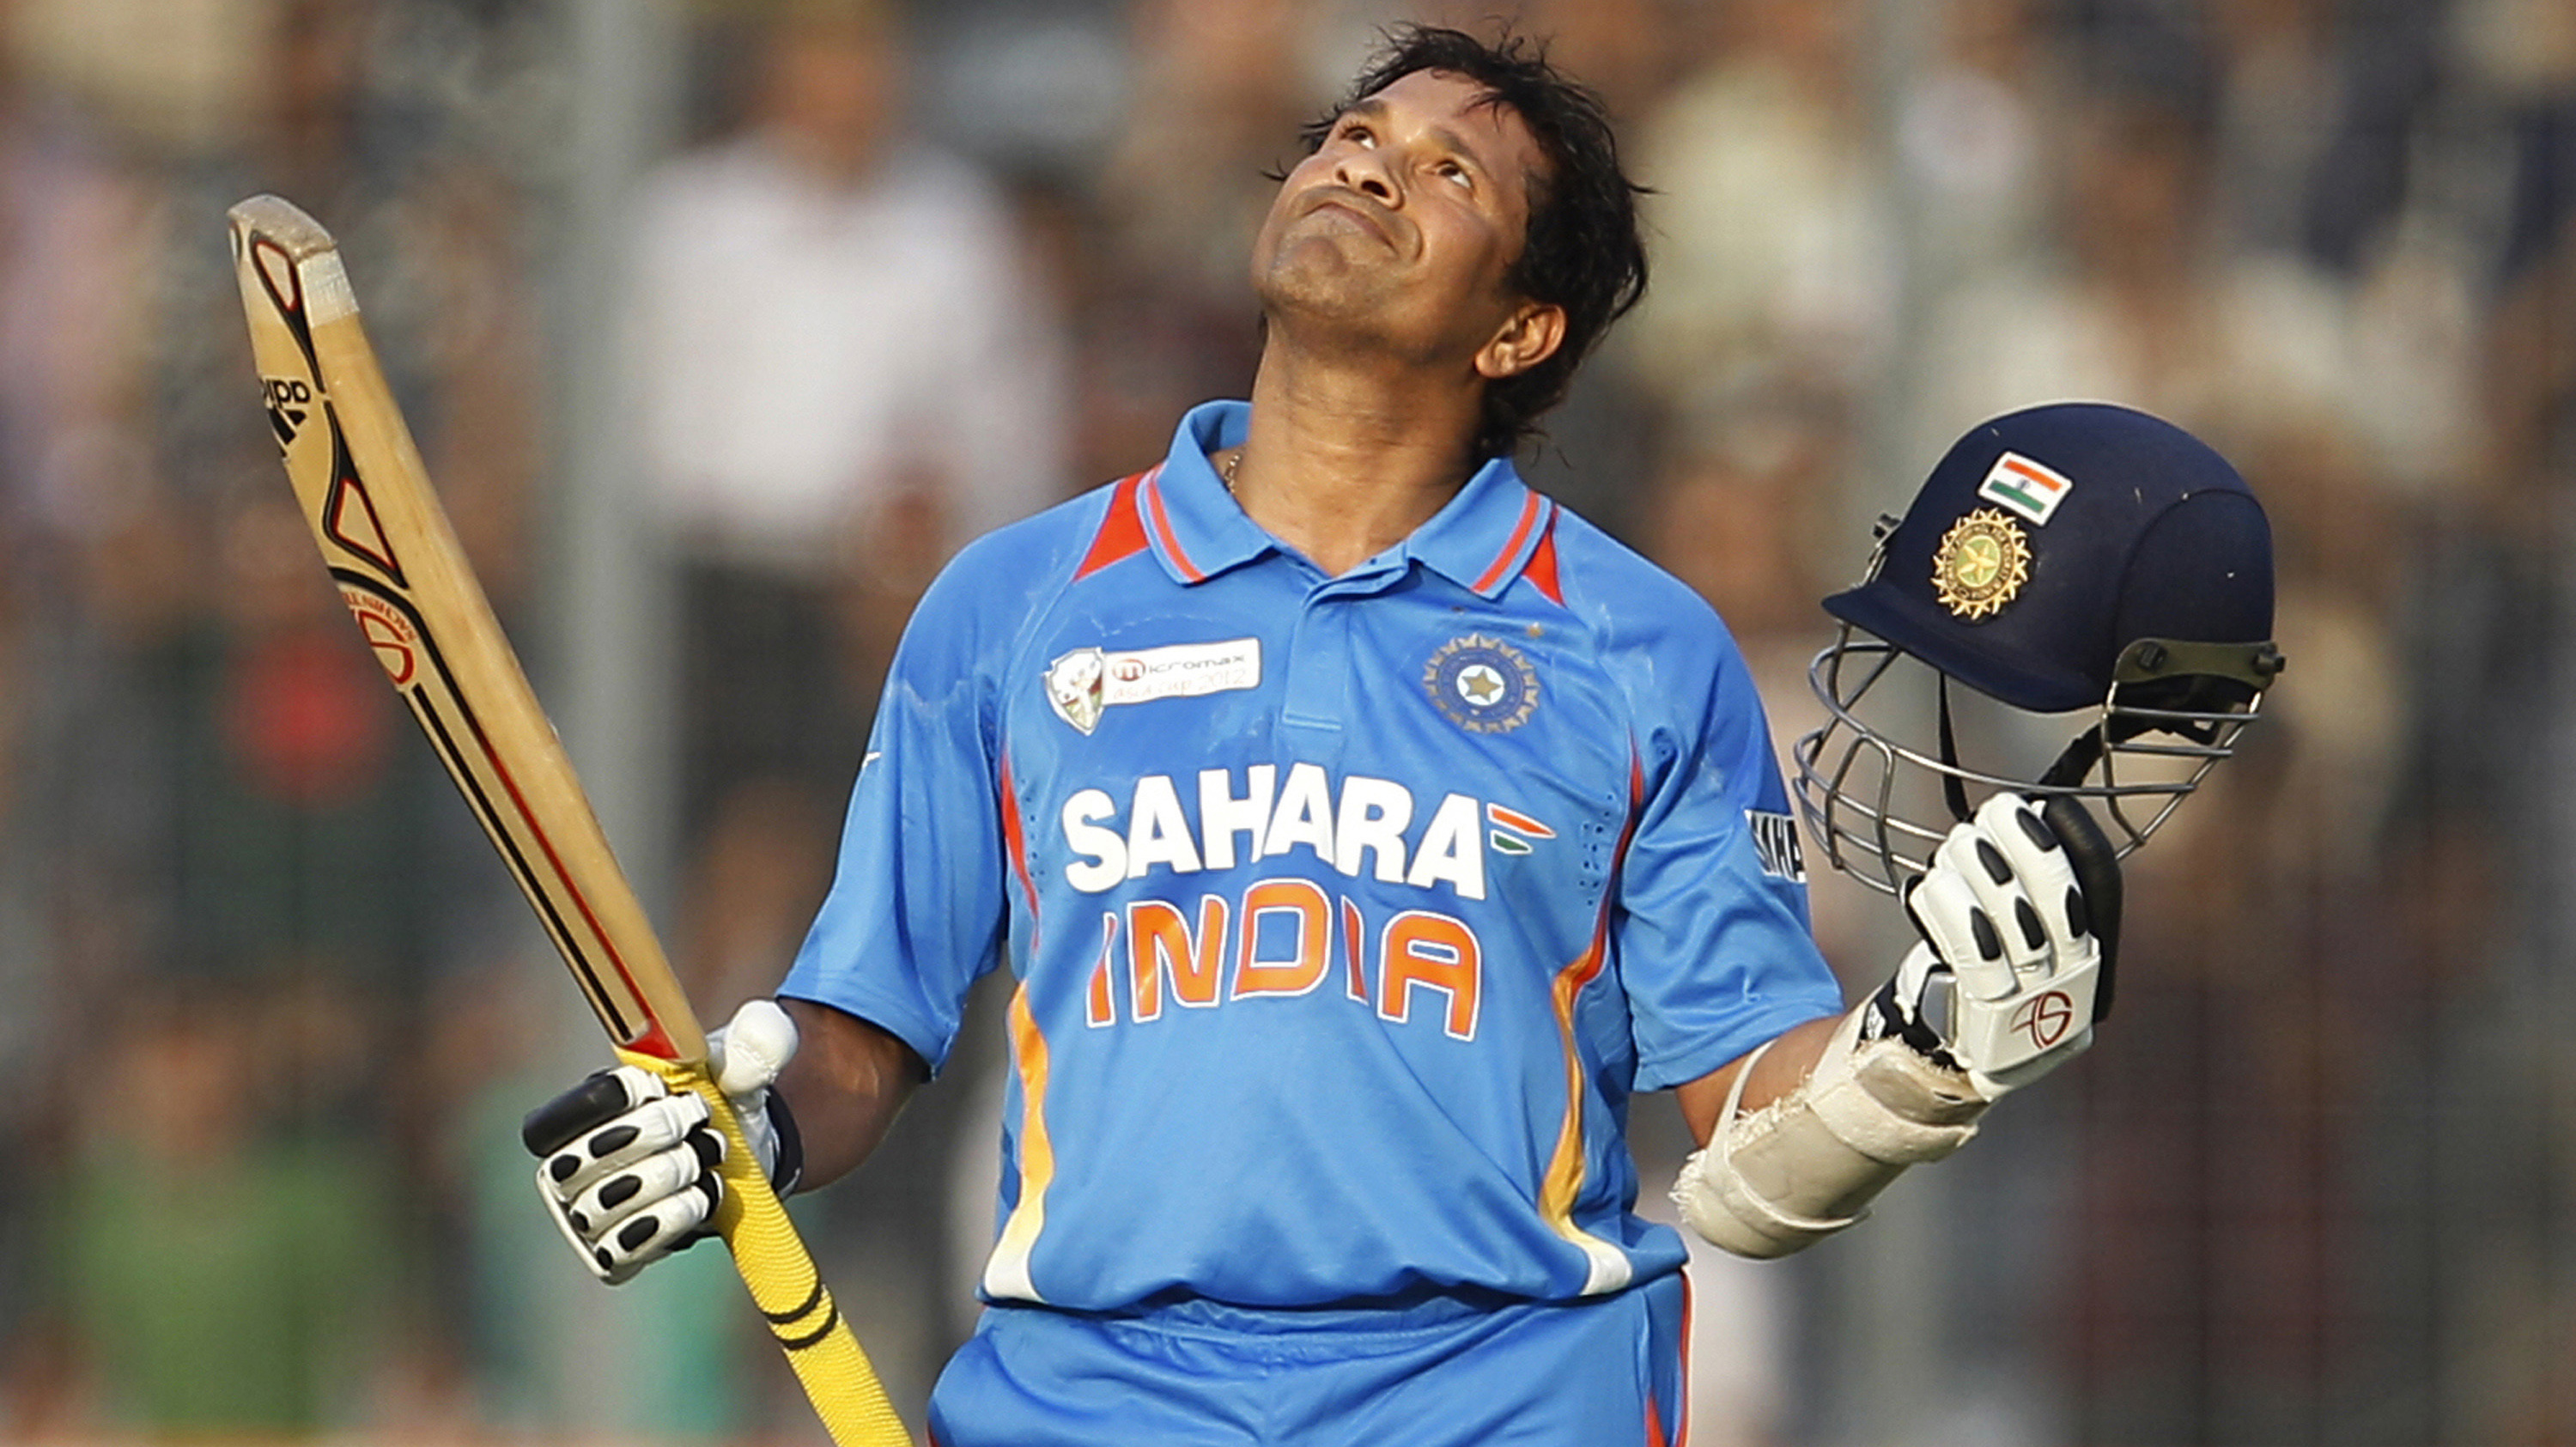 cricket's sachin tendulkar announces retirement | wvtf